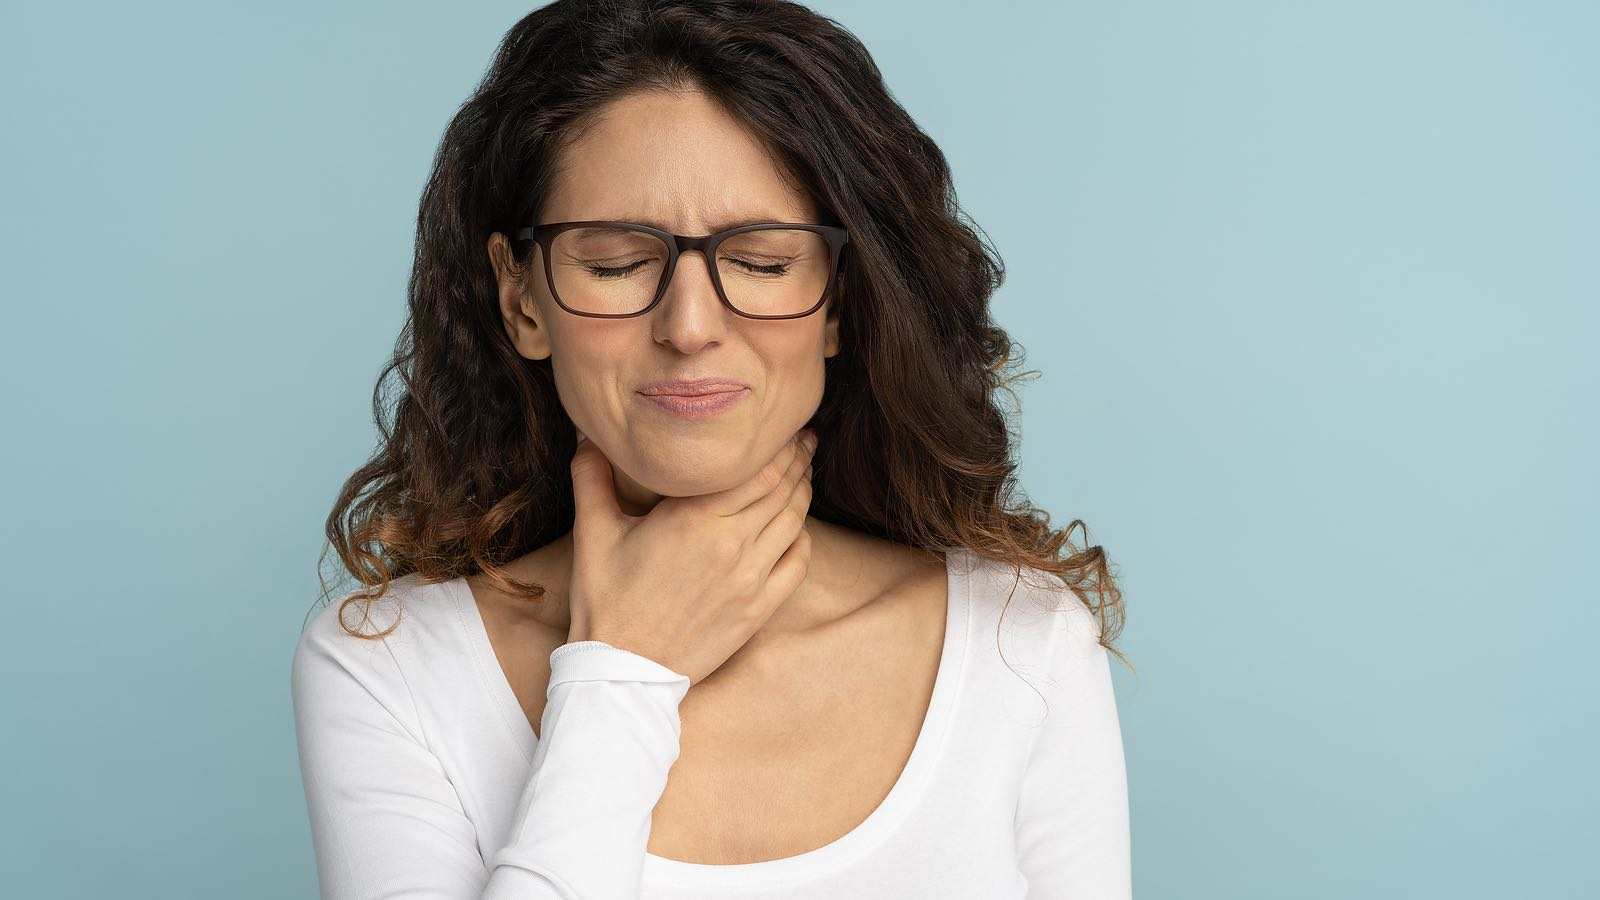 The Relationship Between Posture and Swallowing : Gain insight into the close relationship between posture and deglutition